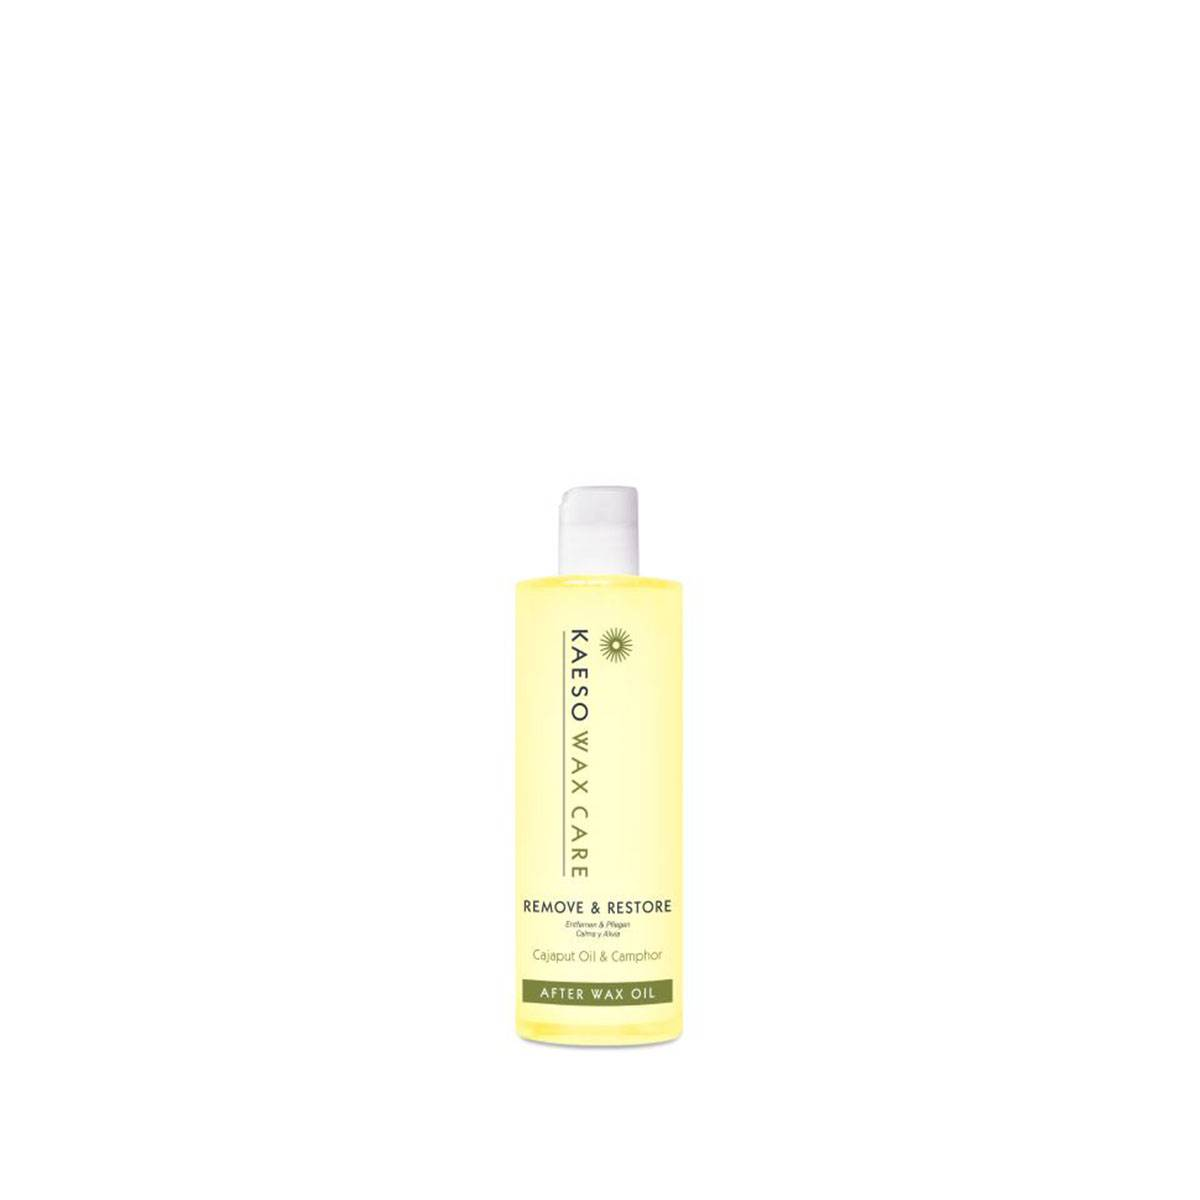 Remove & Restore-after Wax Oil 250ml*cat